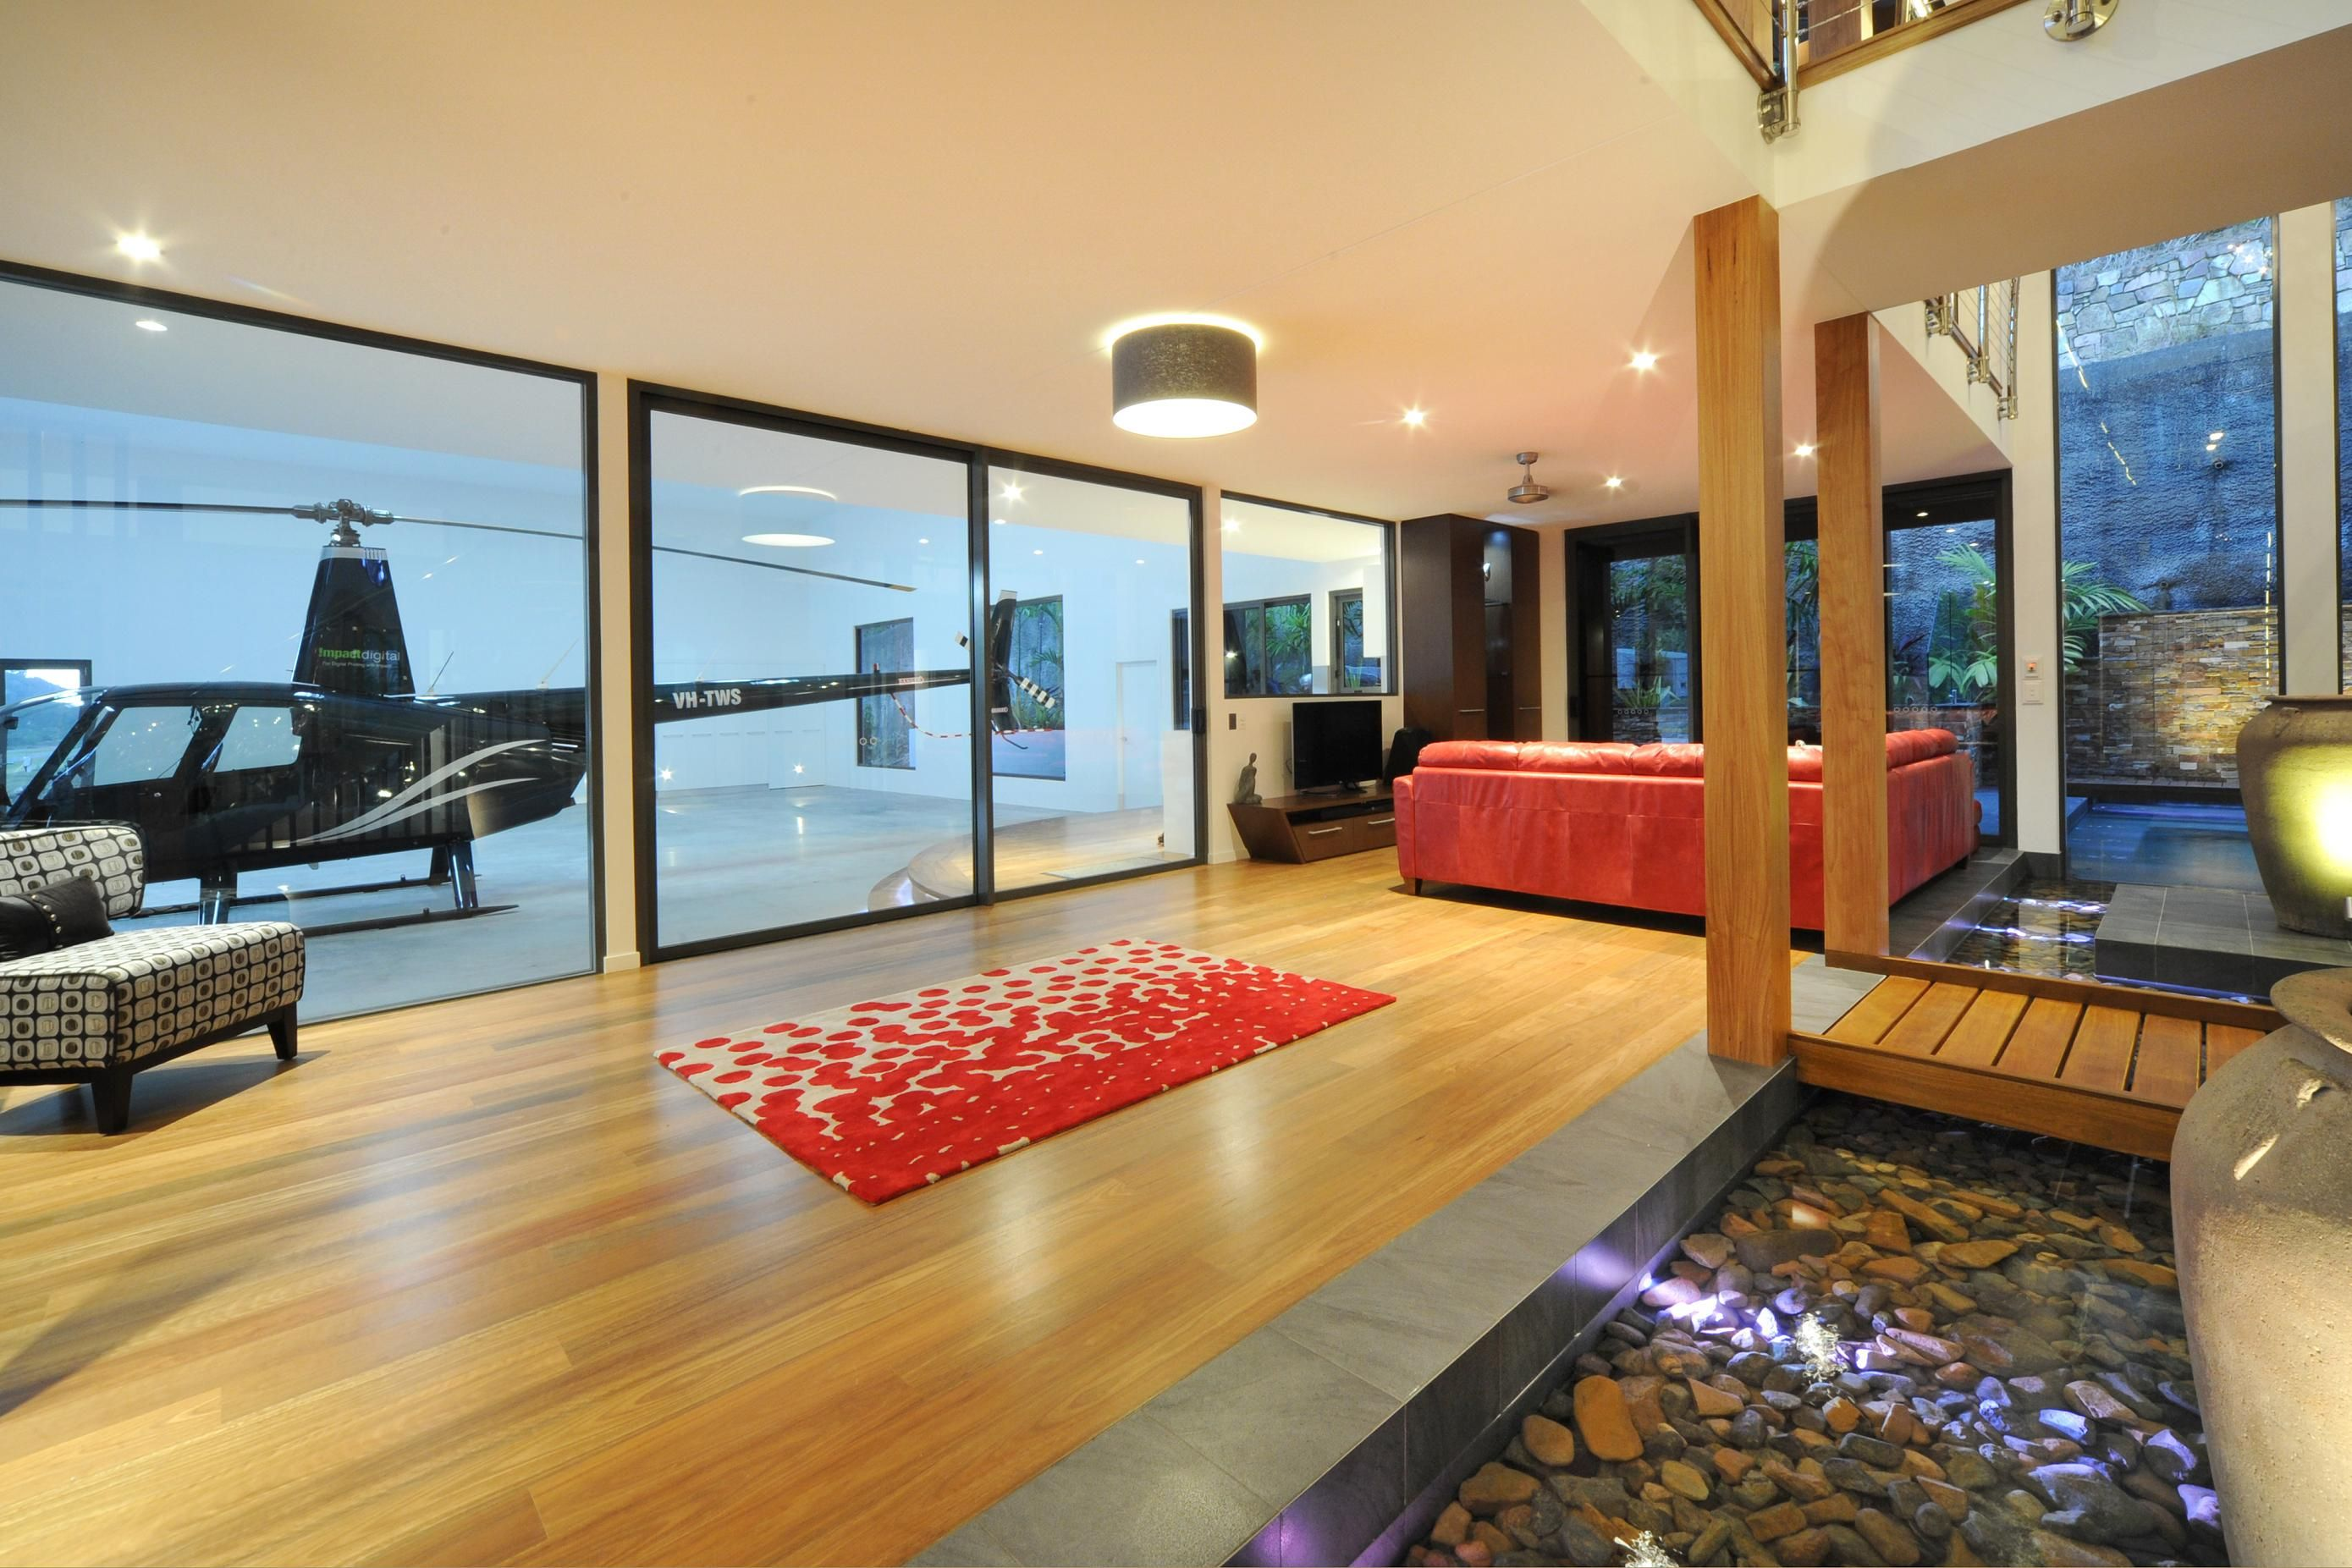 Lovely Chris Clout Design Hangar Home In Whitsundayu0027s With Helicopter In House  Modern Contemporary Tropical With Good Part 18